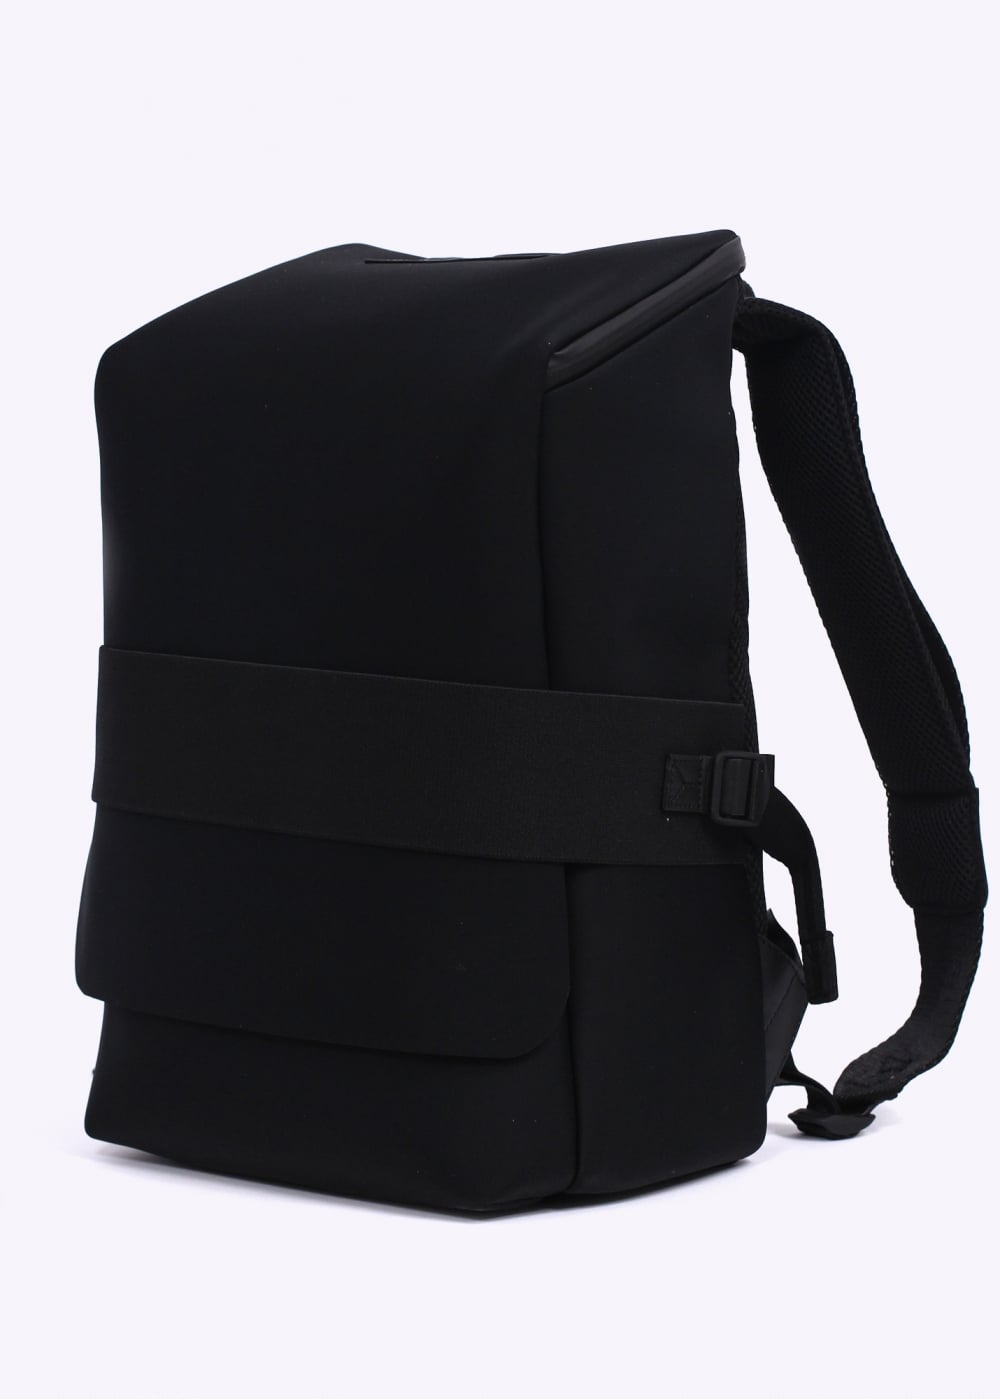 Y3   Adidas - Yohji Yamamoto Qasa S Backpack - Black - Bags from Triads UK 90ccf306b956d